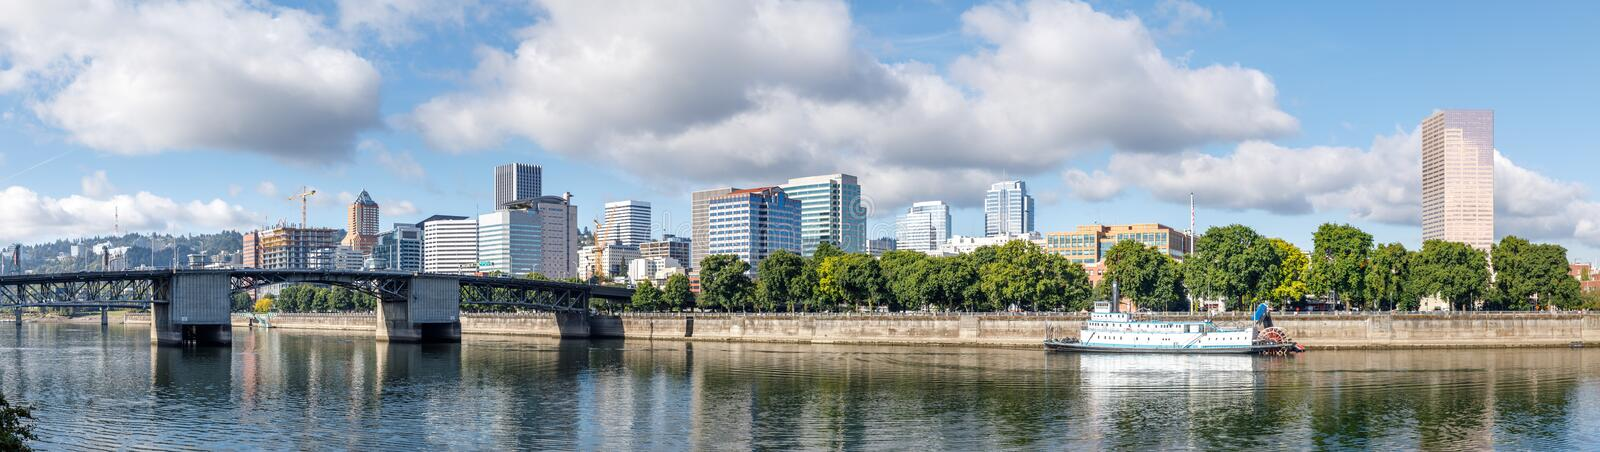 Steel bridge over water with cityscape and skyline in portland. Portland, Oregon - Sep 21, 2018 : Burnside Bridge over water with cityscape and skyline in royalty free stock image